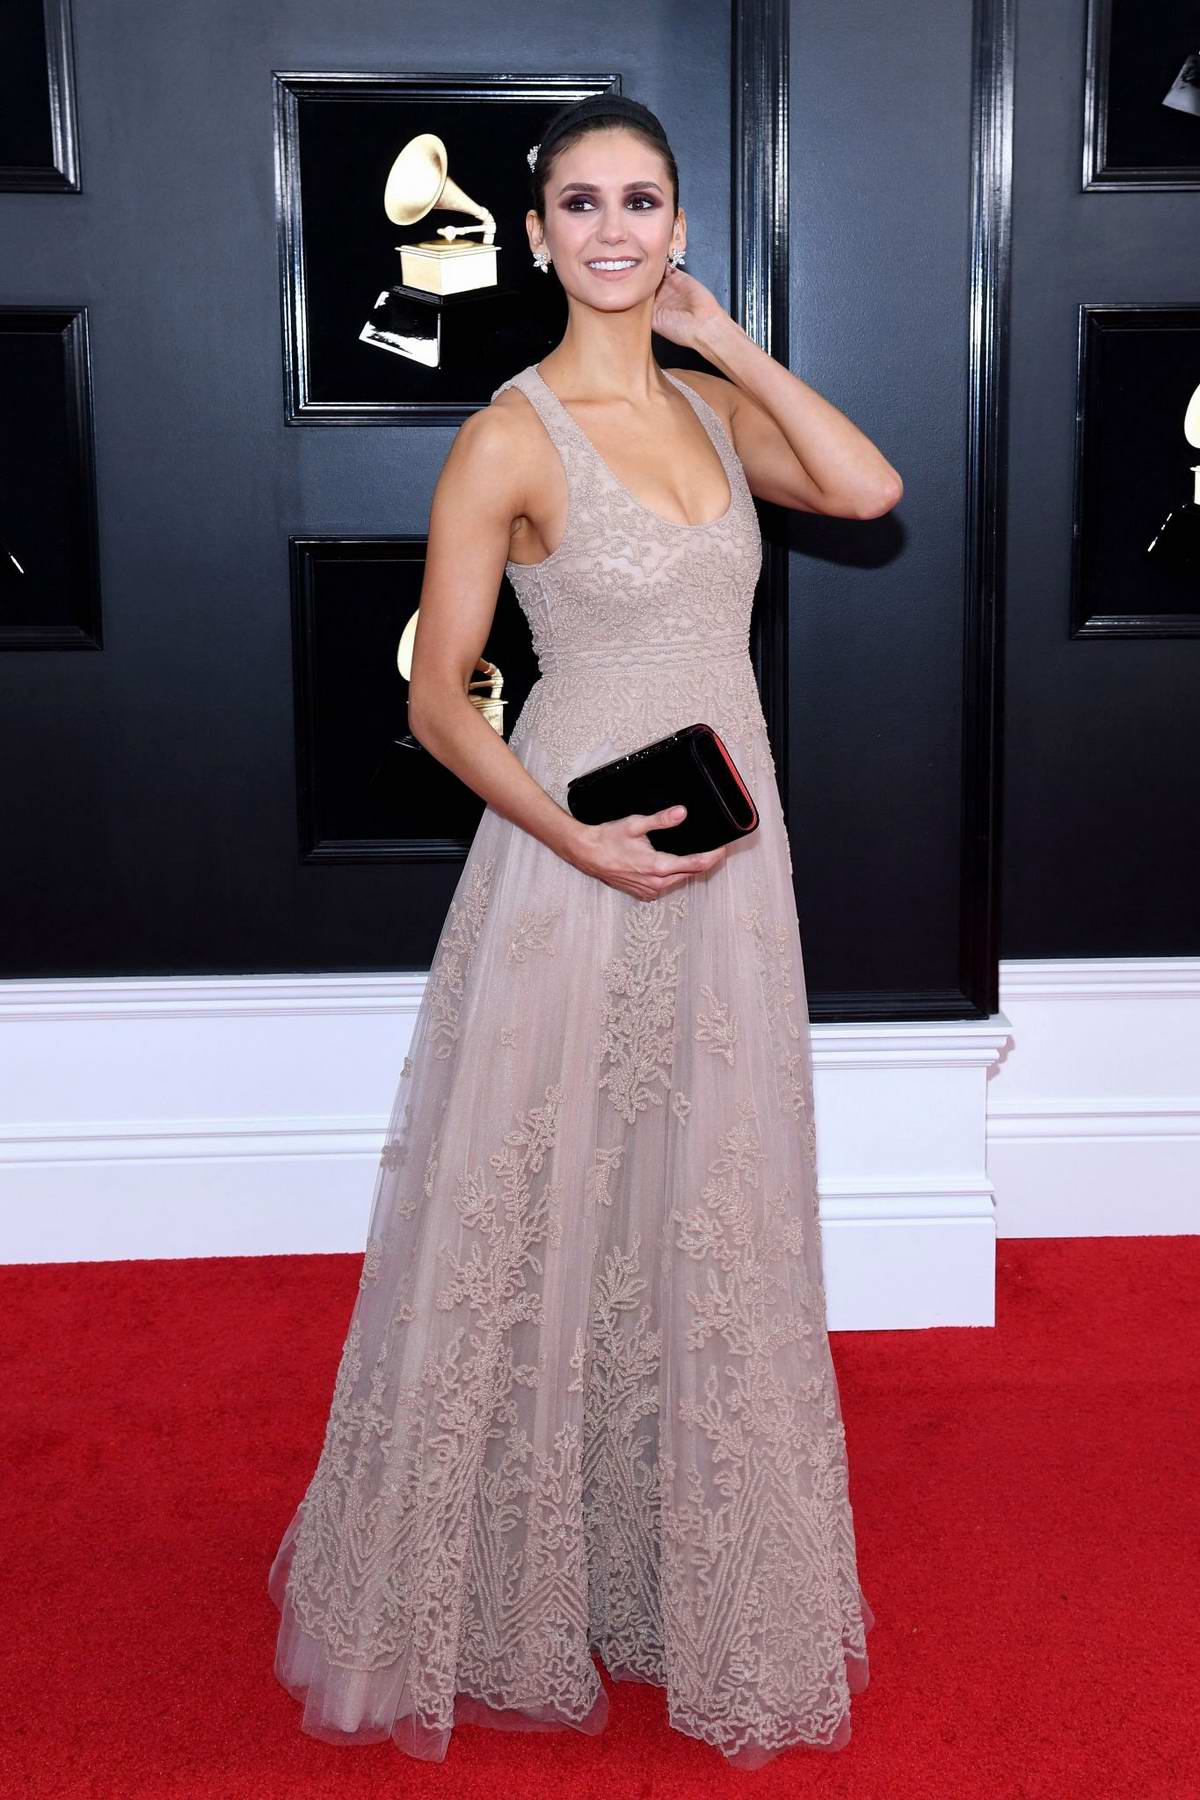 Nina Dobrev attends the 61st Annual GRAMMY Awards (2019 GRAMMYs) at Staples Center in Los Angeles